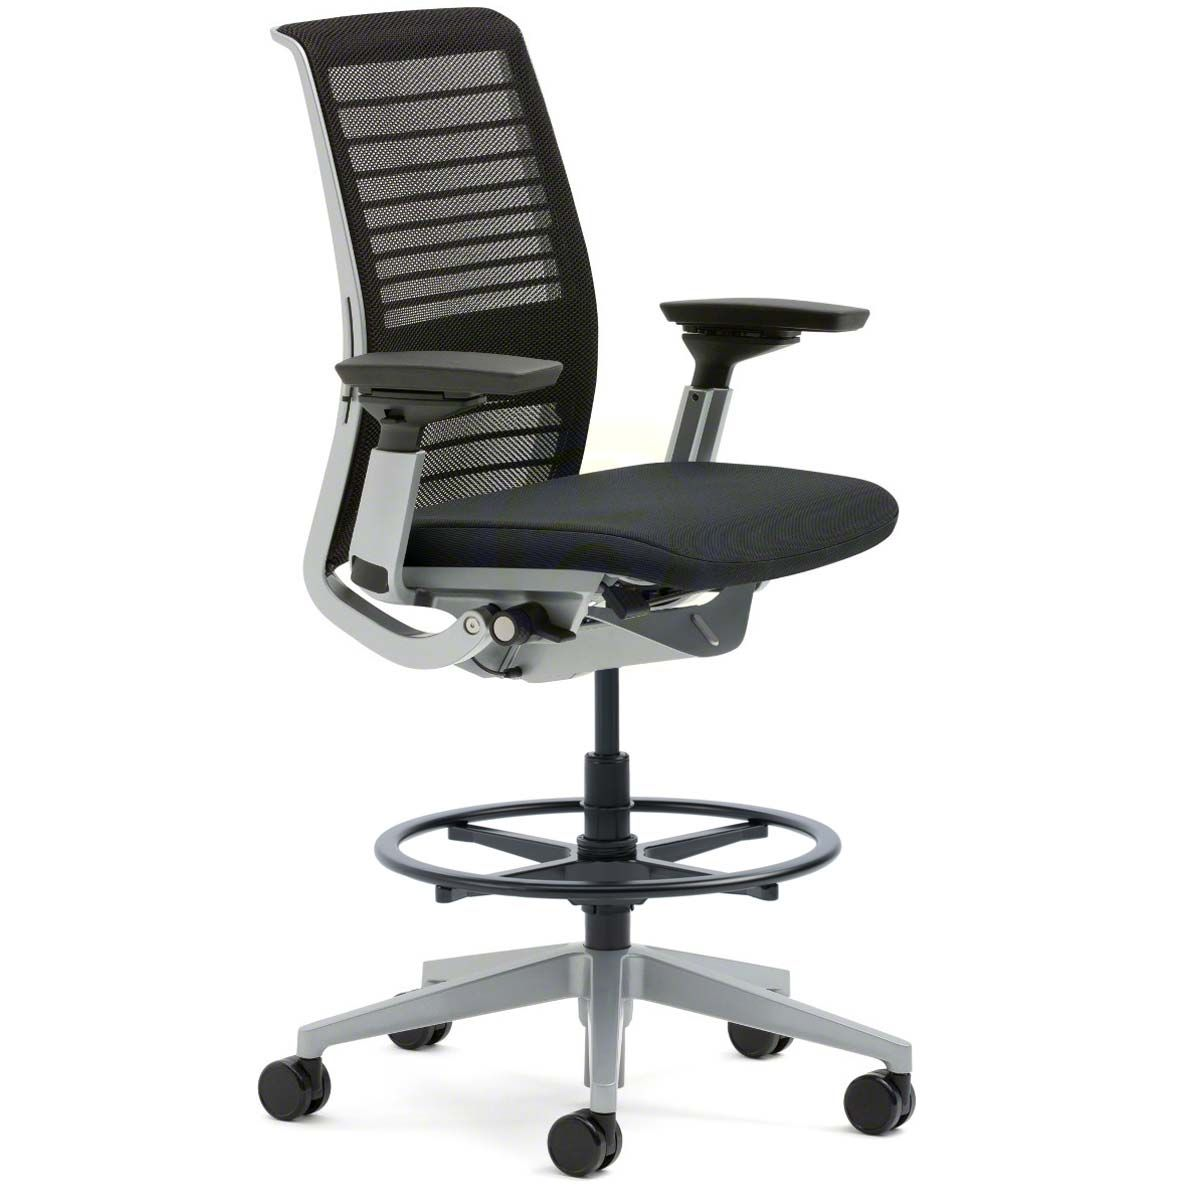 Shop Steelcase Think Drafting Stools With 3d Knit Back Steelcase Steelcase Think Steelcase Think Chair